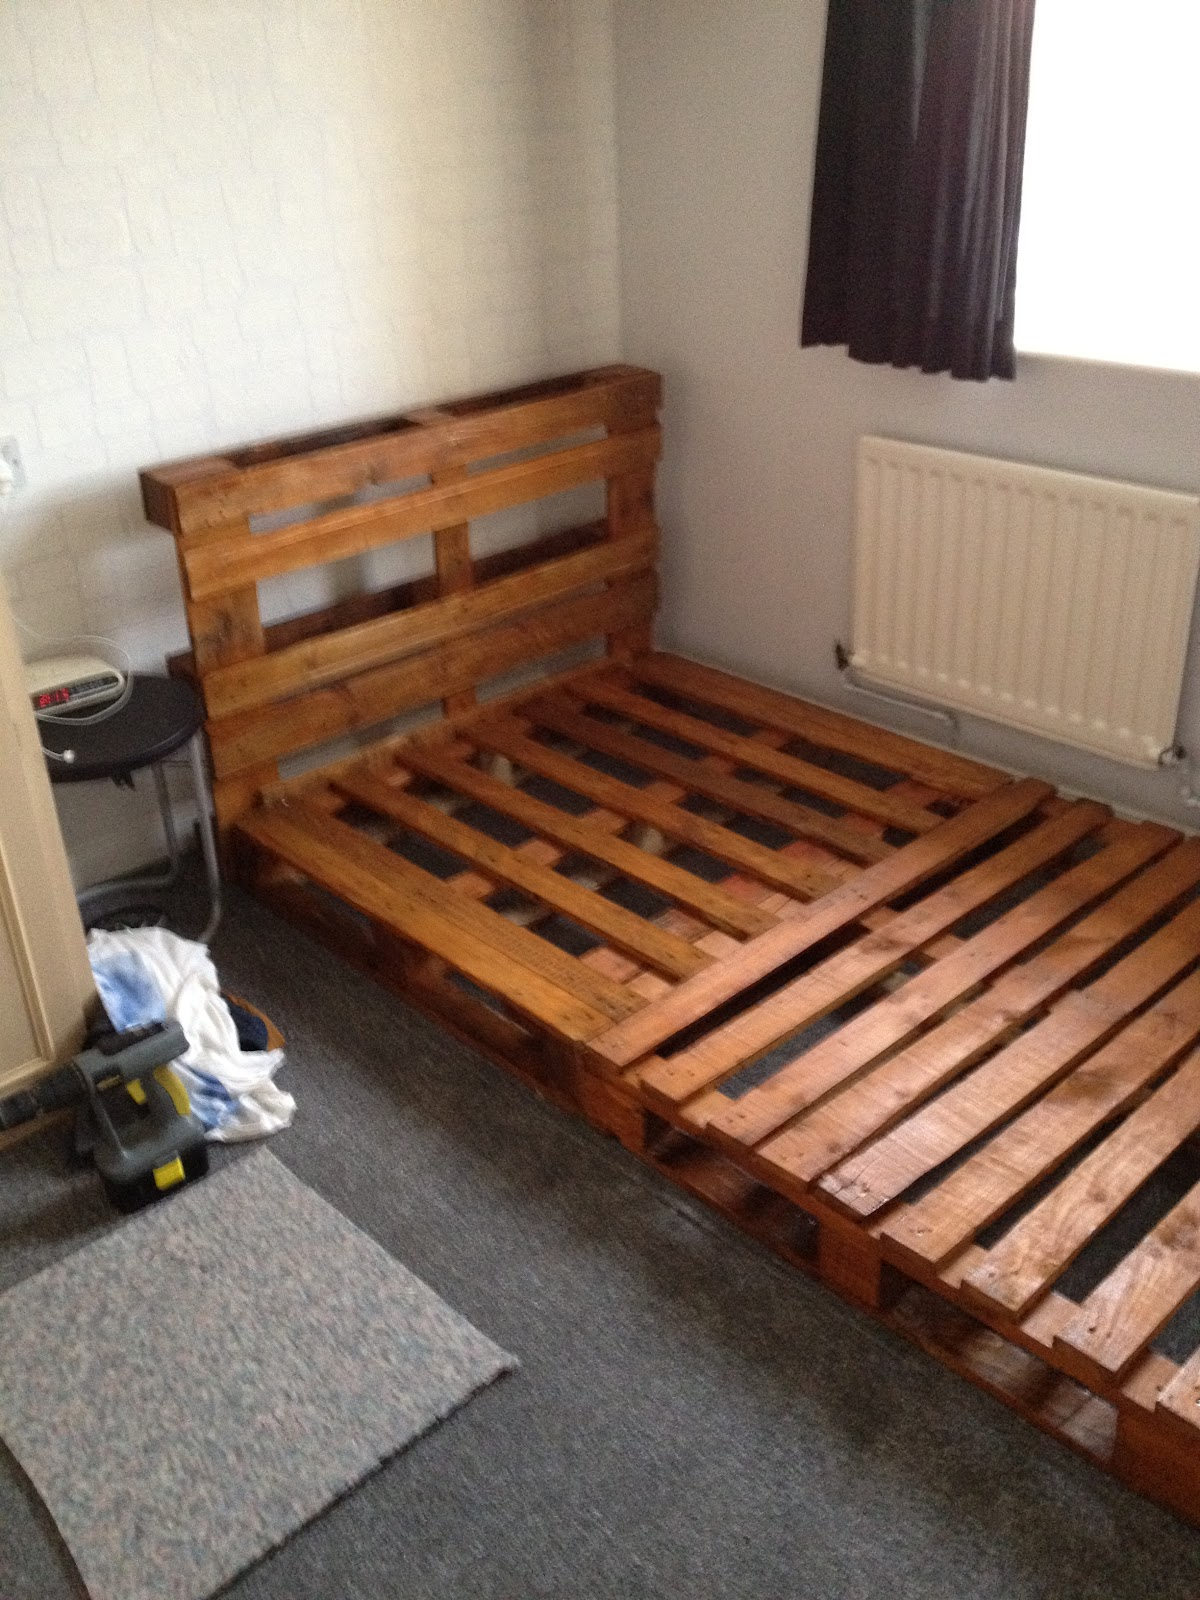 Diy Twin Pallet Bed Diy pallet bed